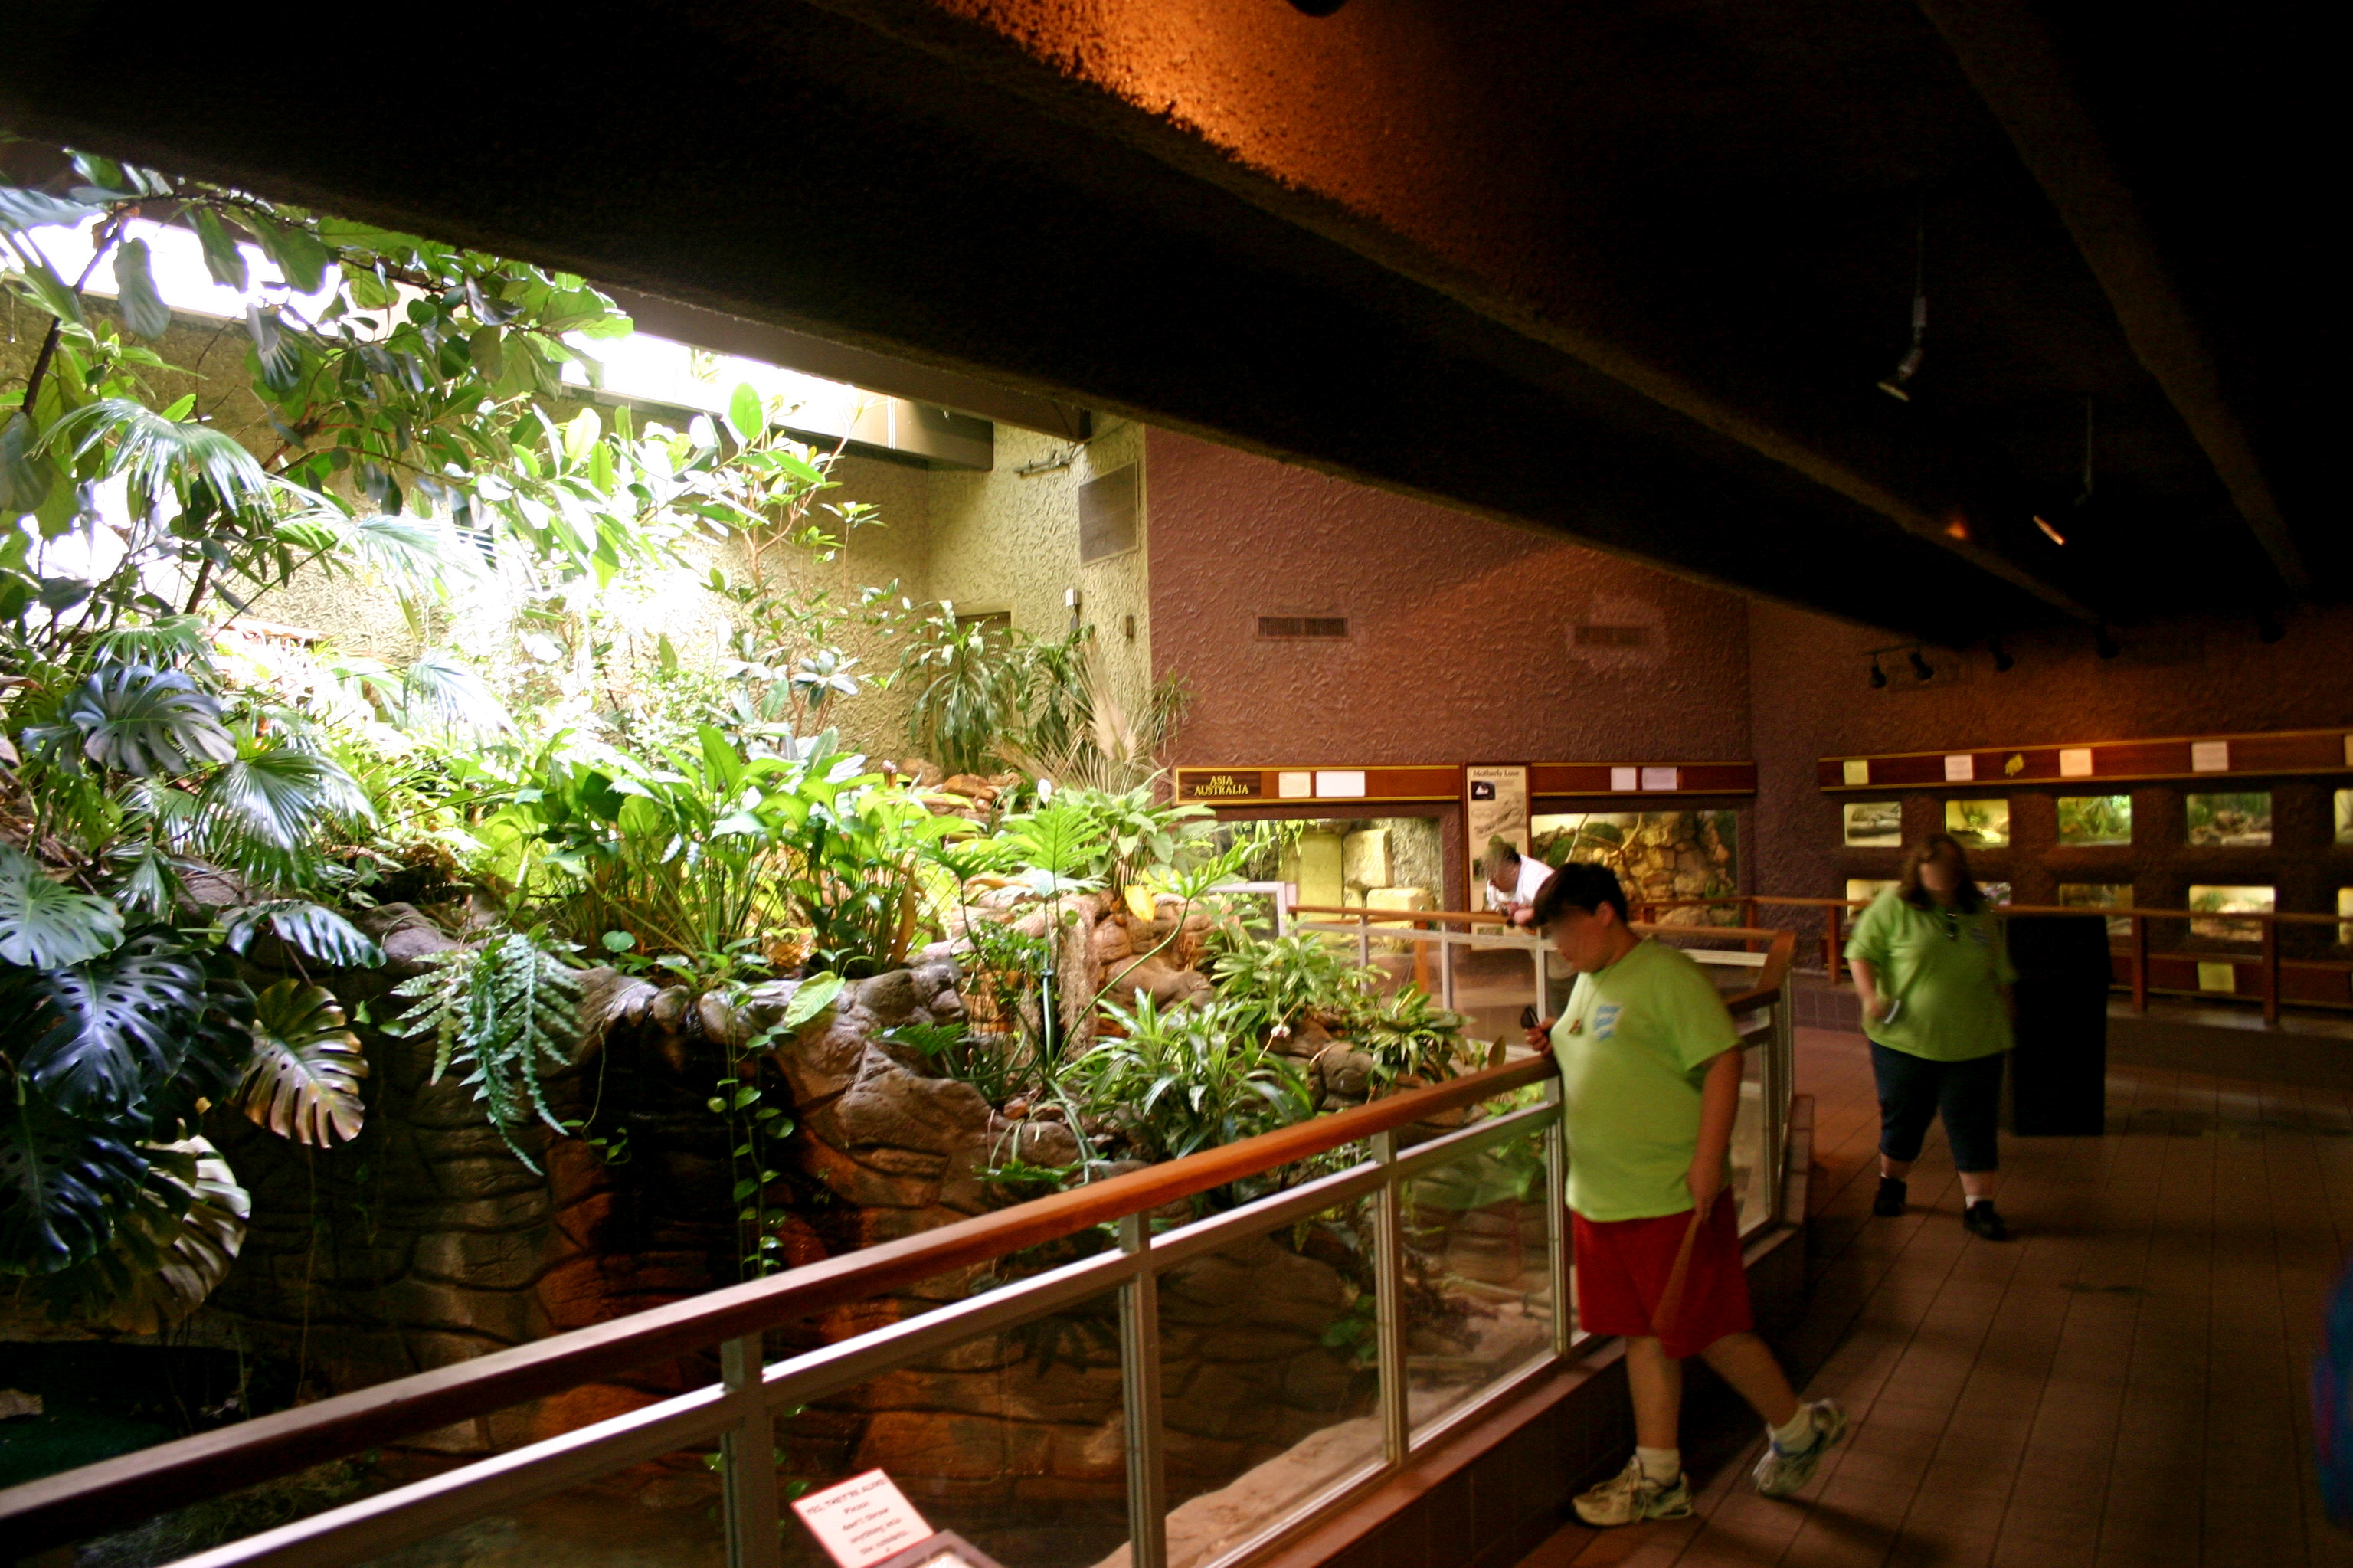 The Reptile Room Part